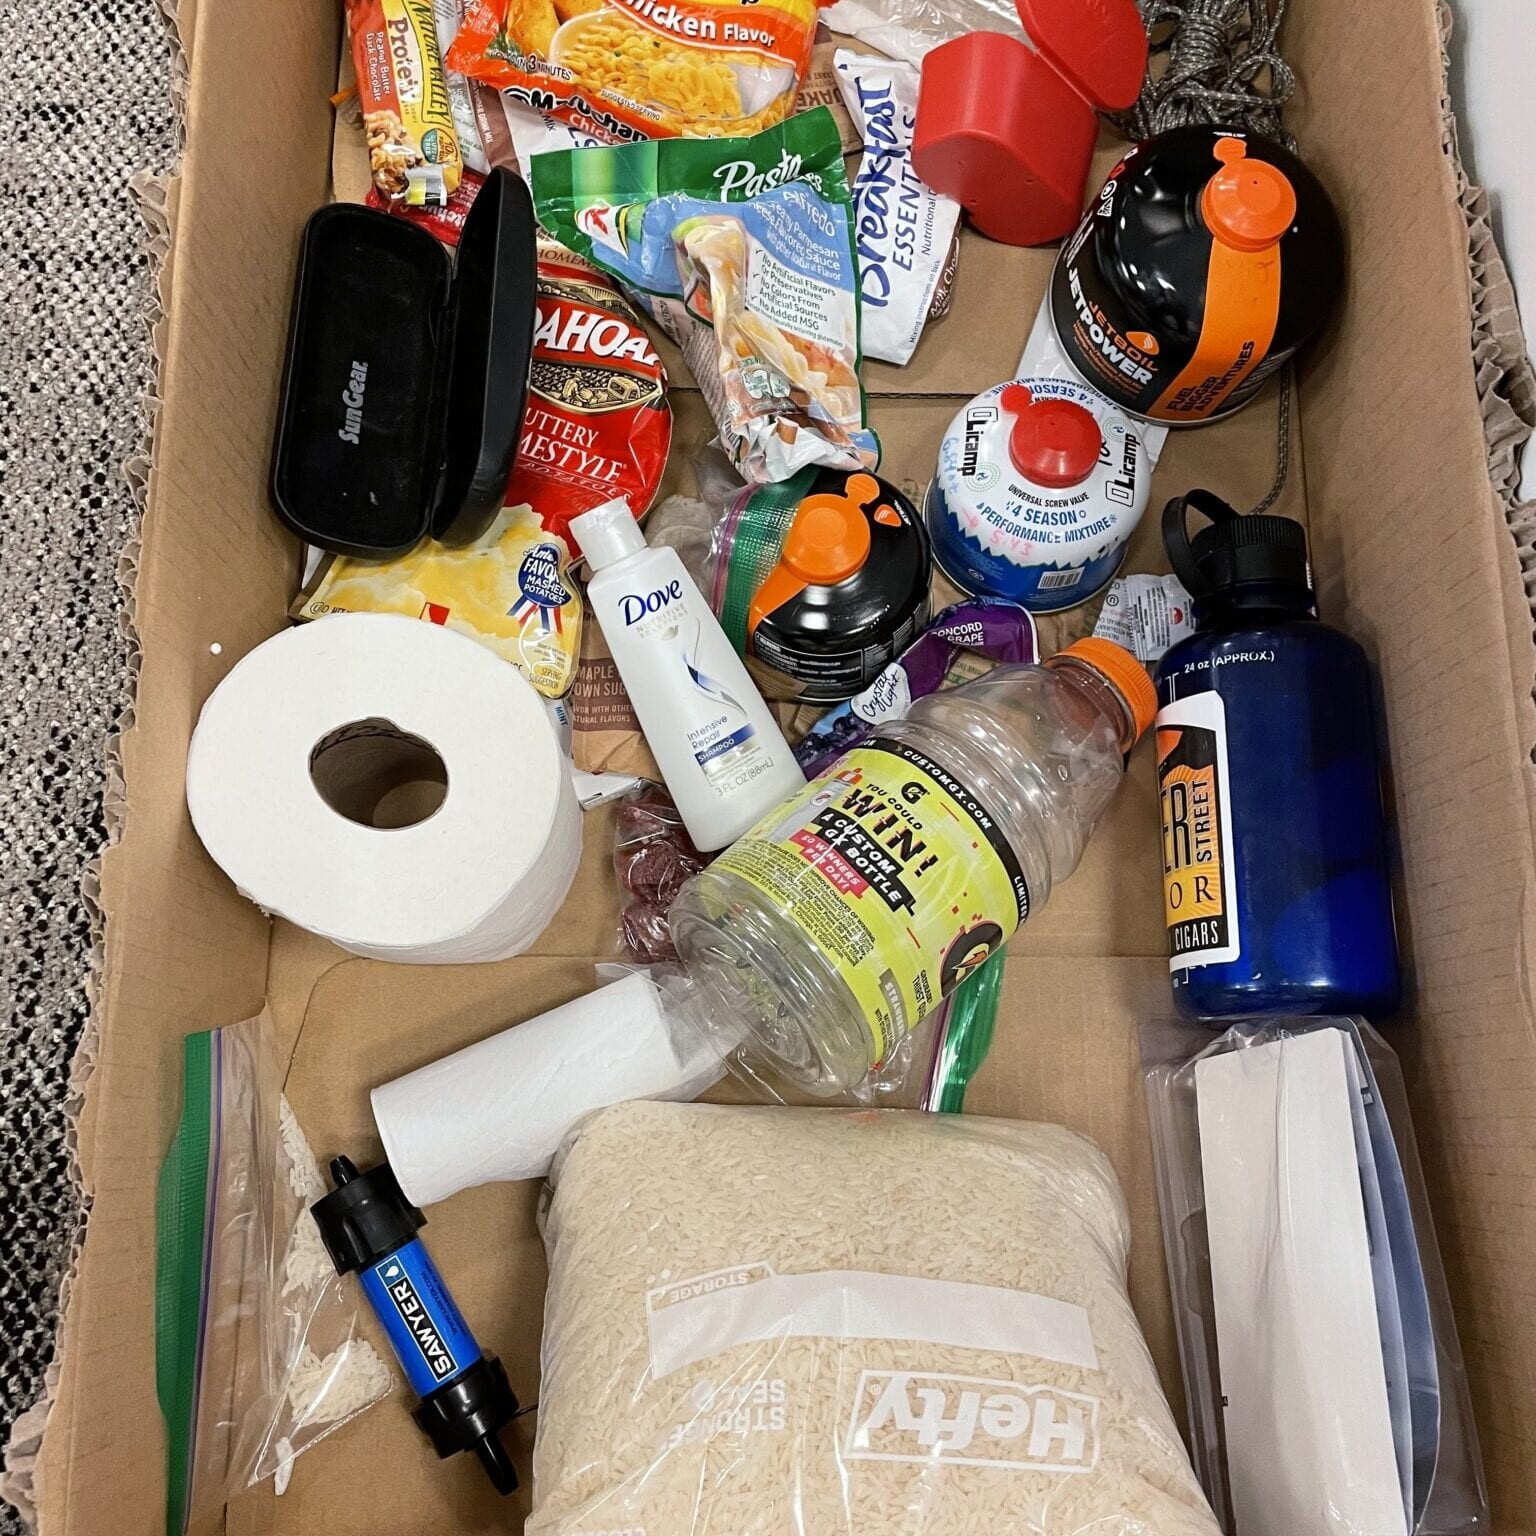 hiker box with random supplies like toilet paper, ramen, stoves, and a water filter